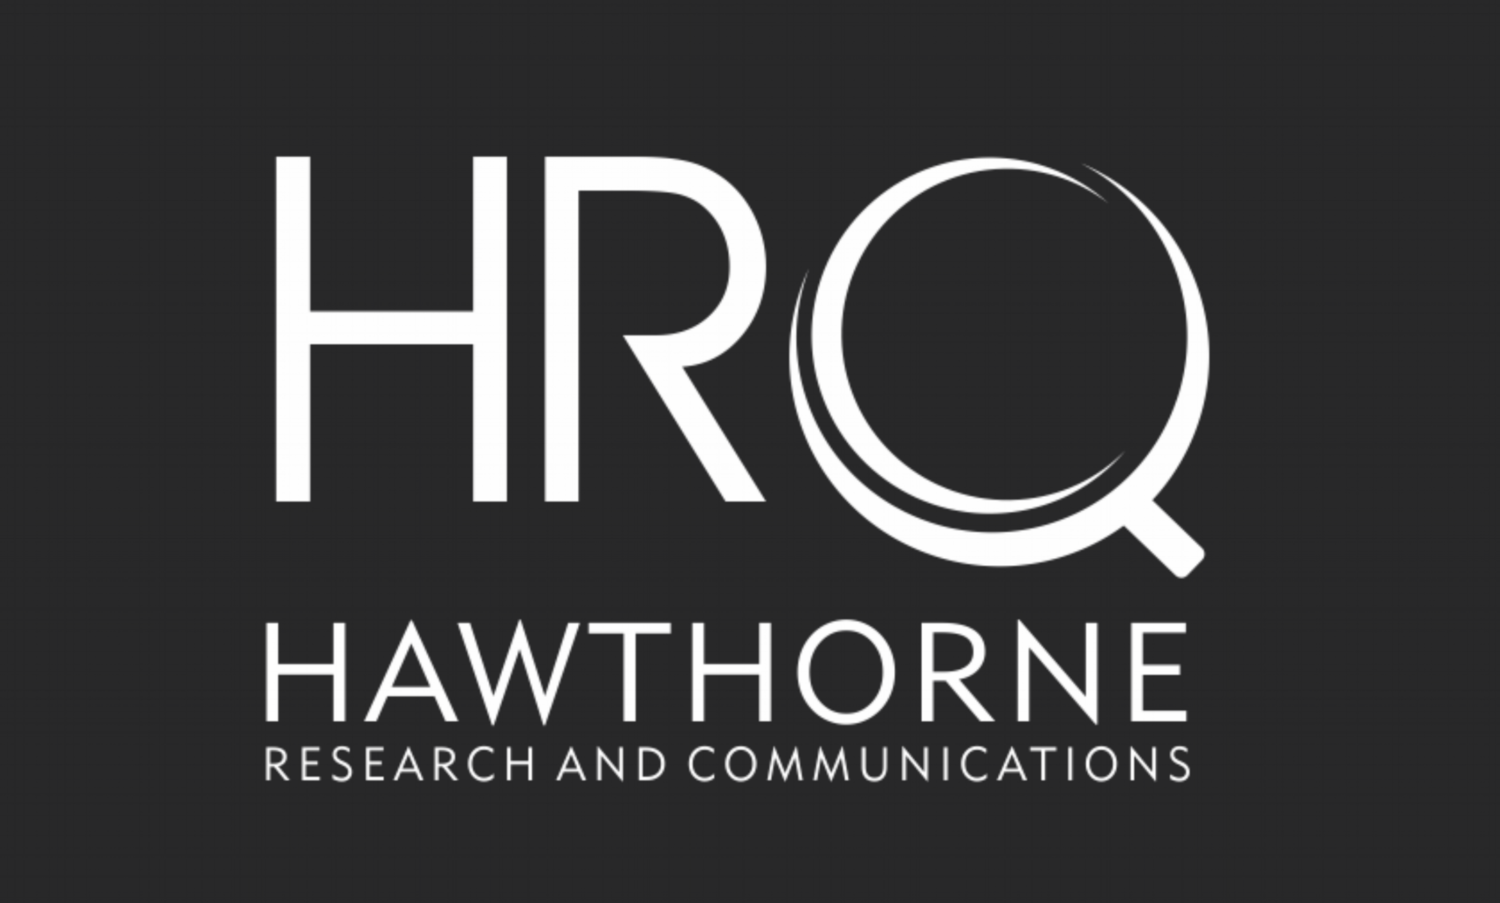 Hawthorne Research and Communications